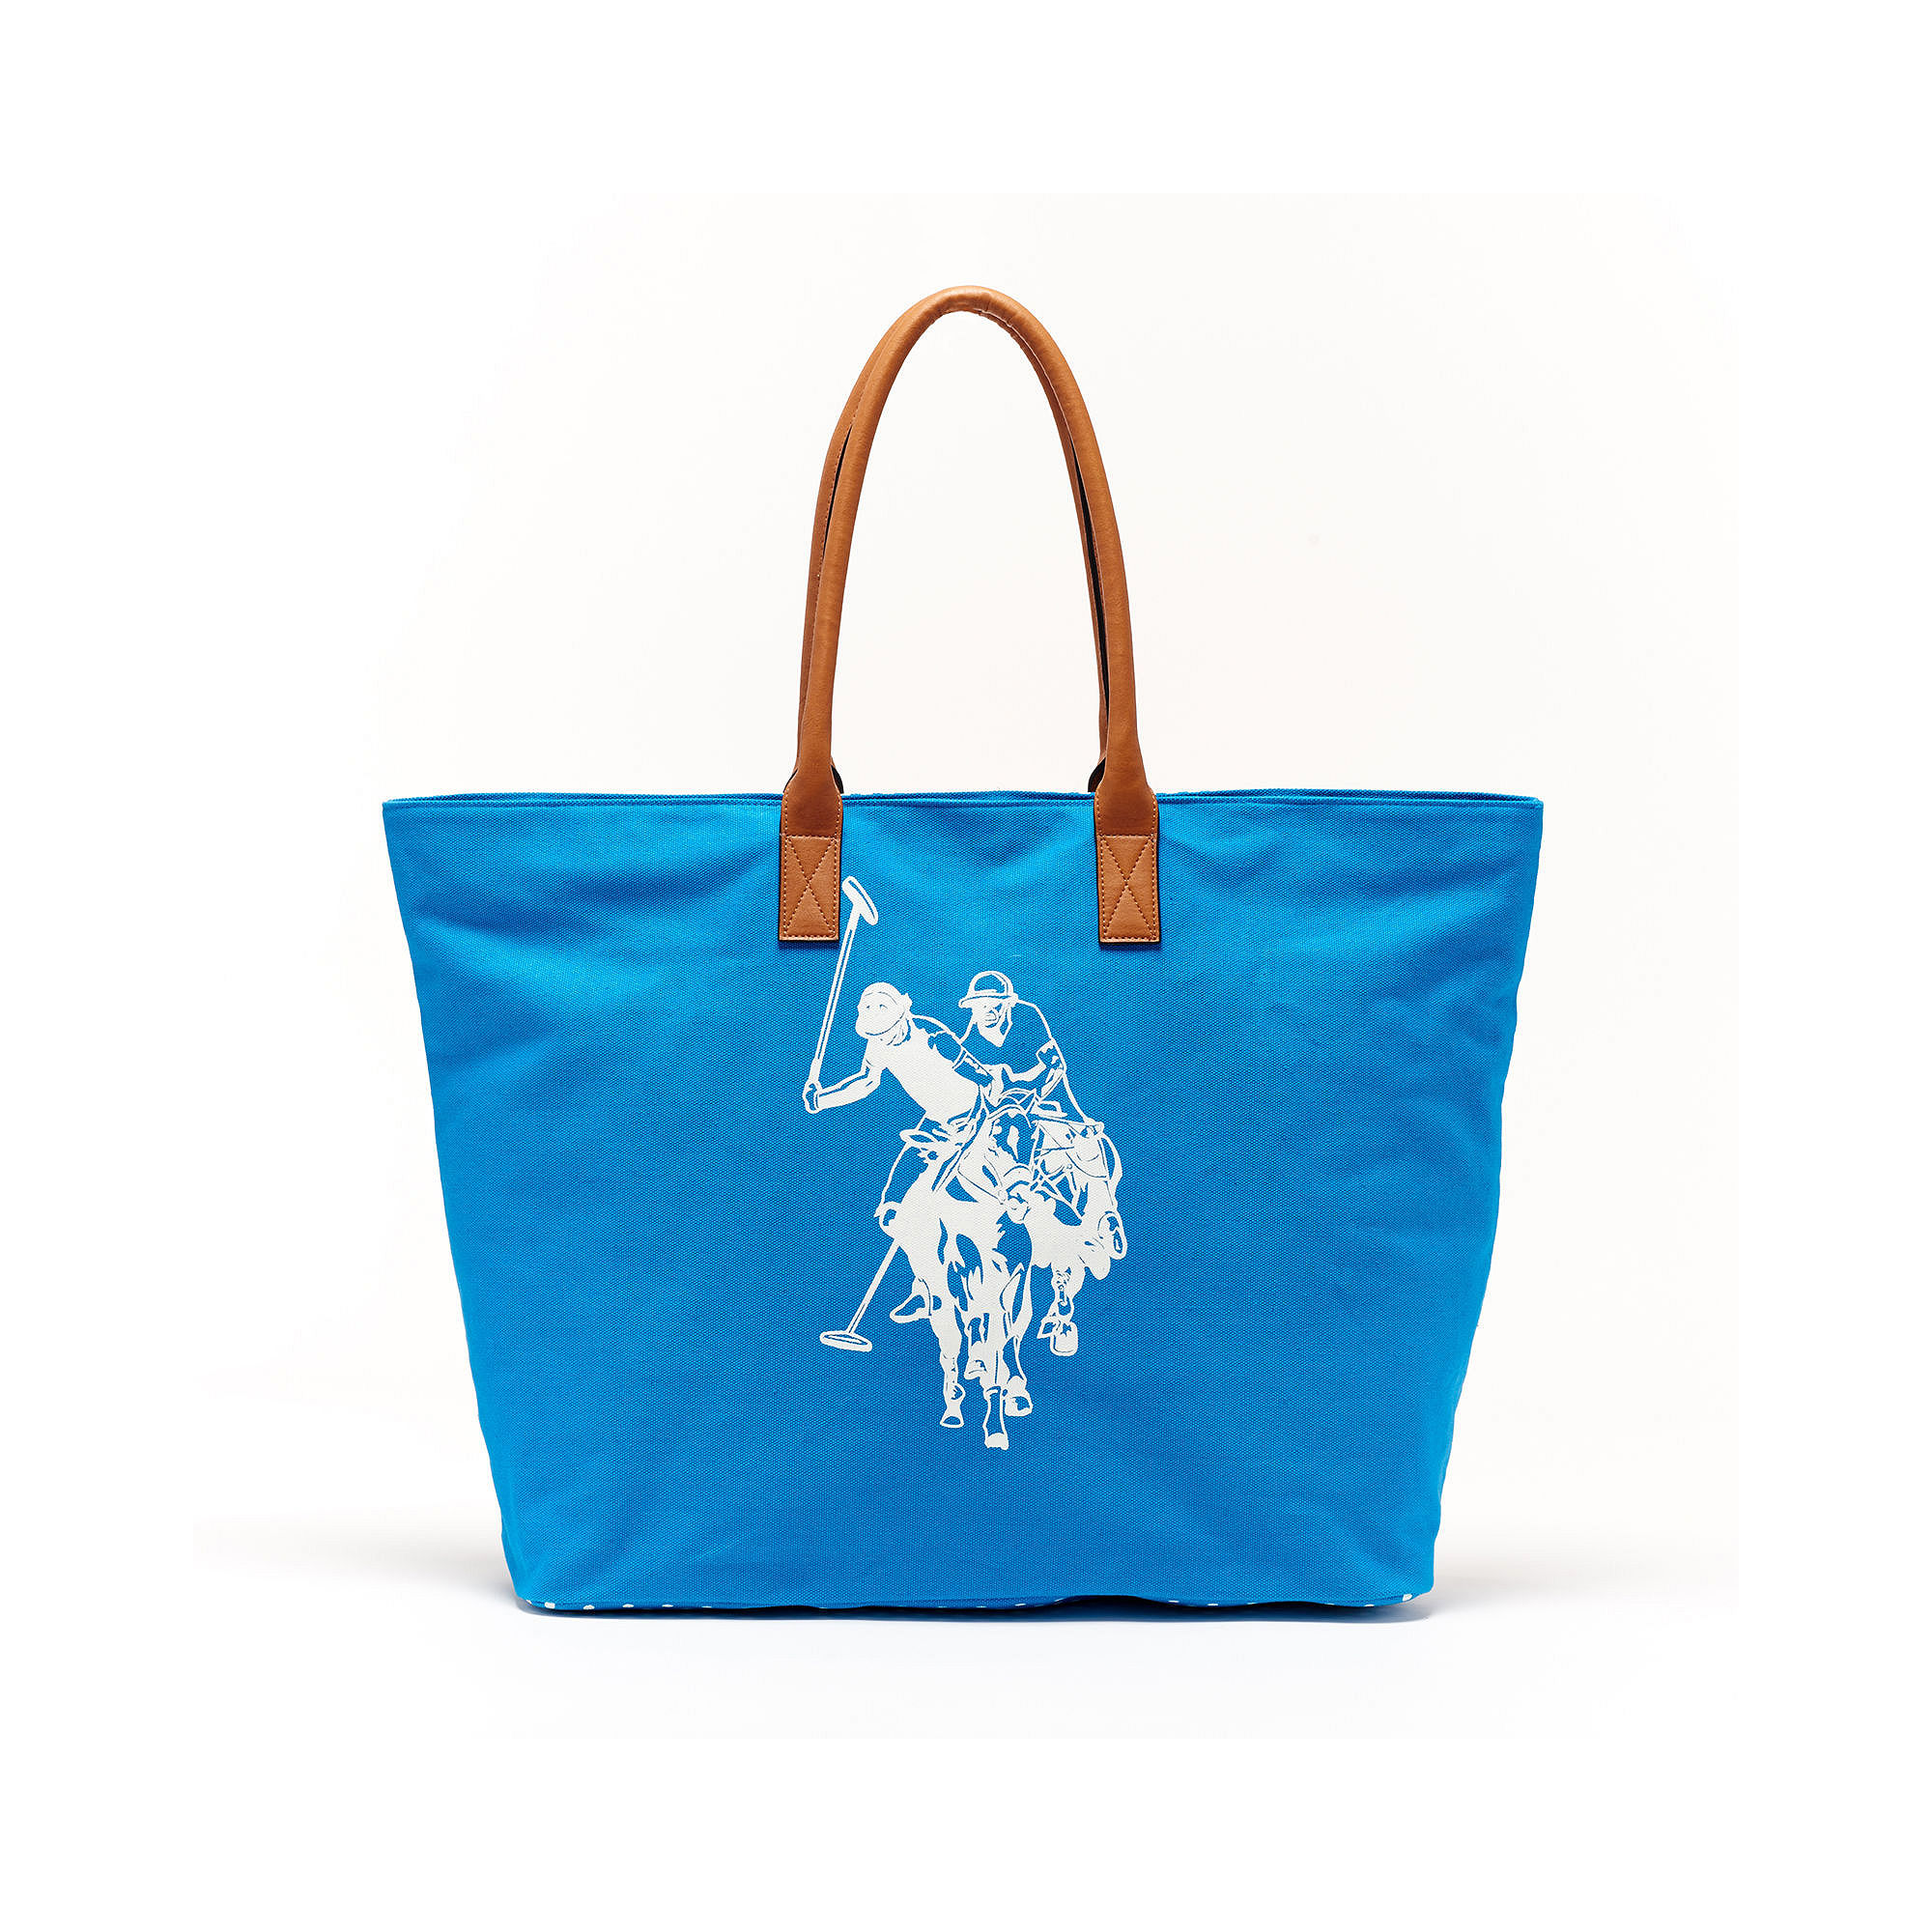 U.S. Polo Assn. Beach Tote